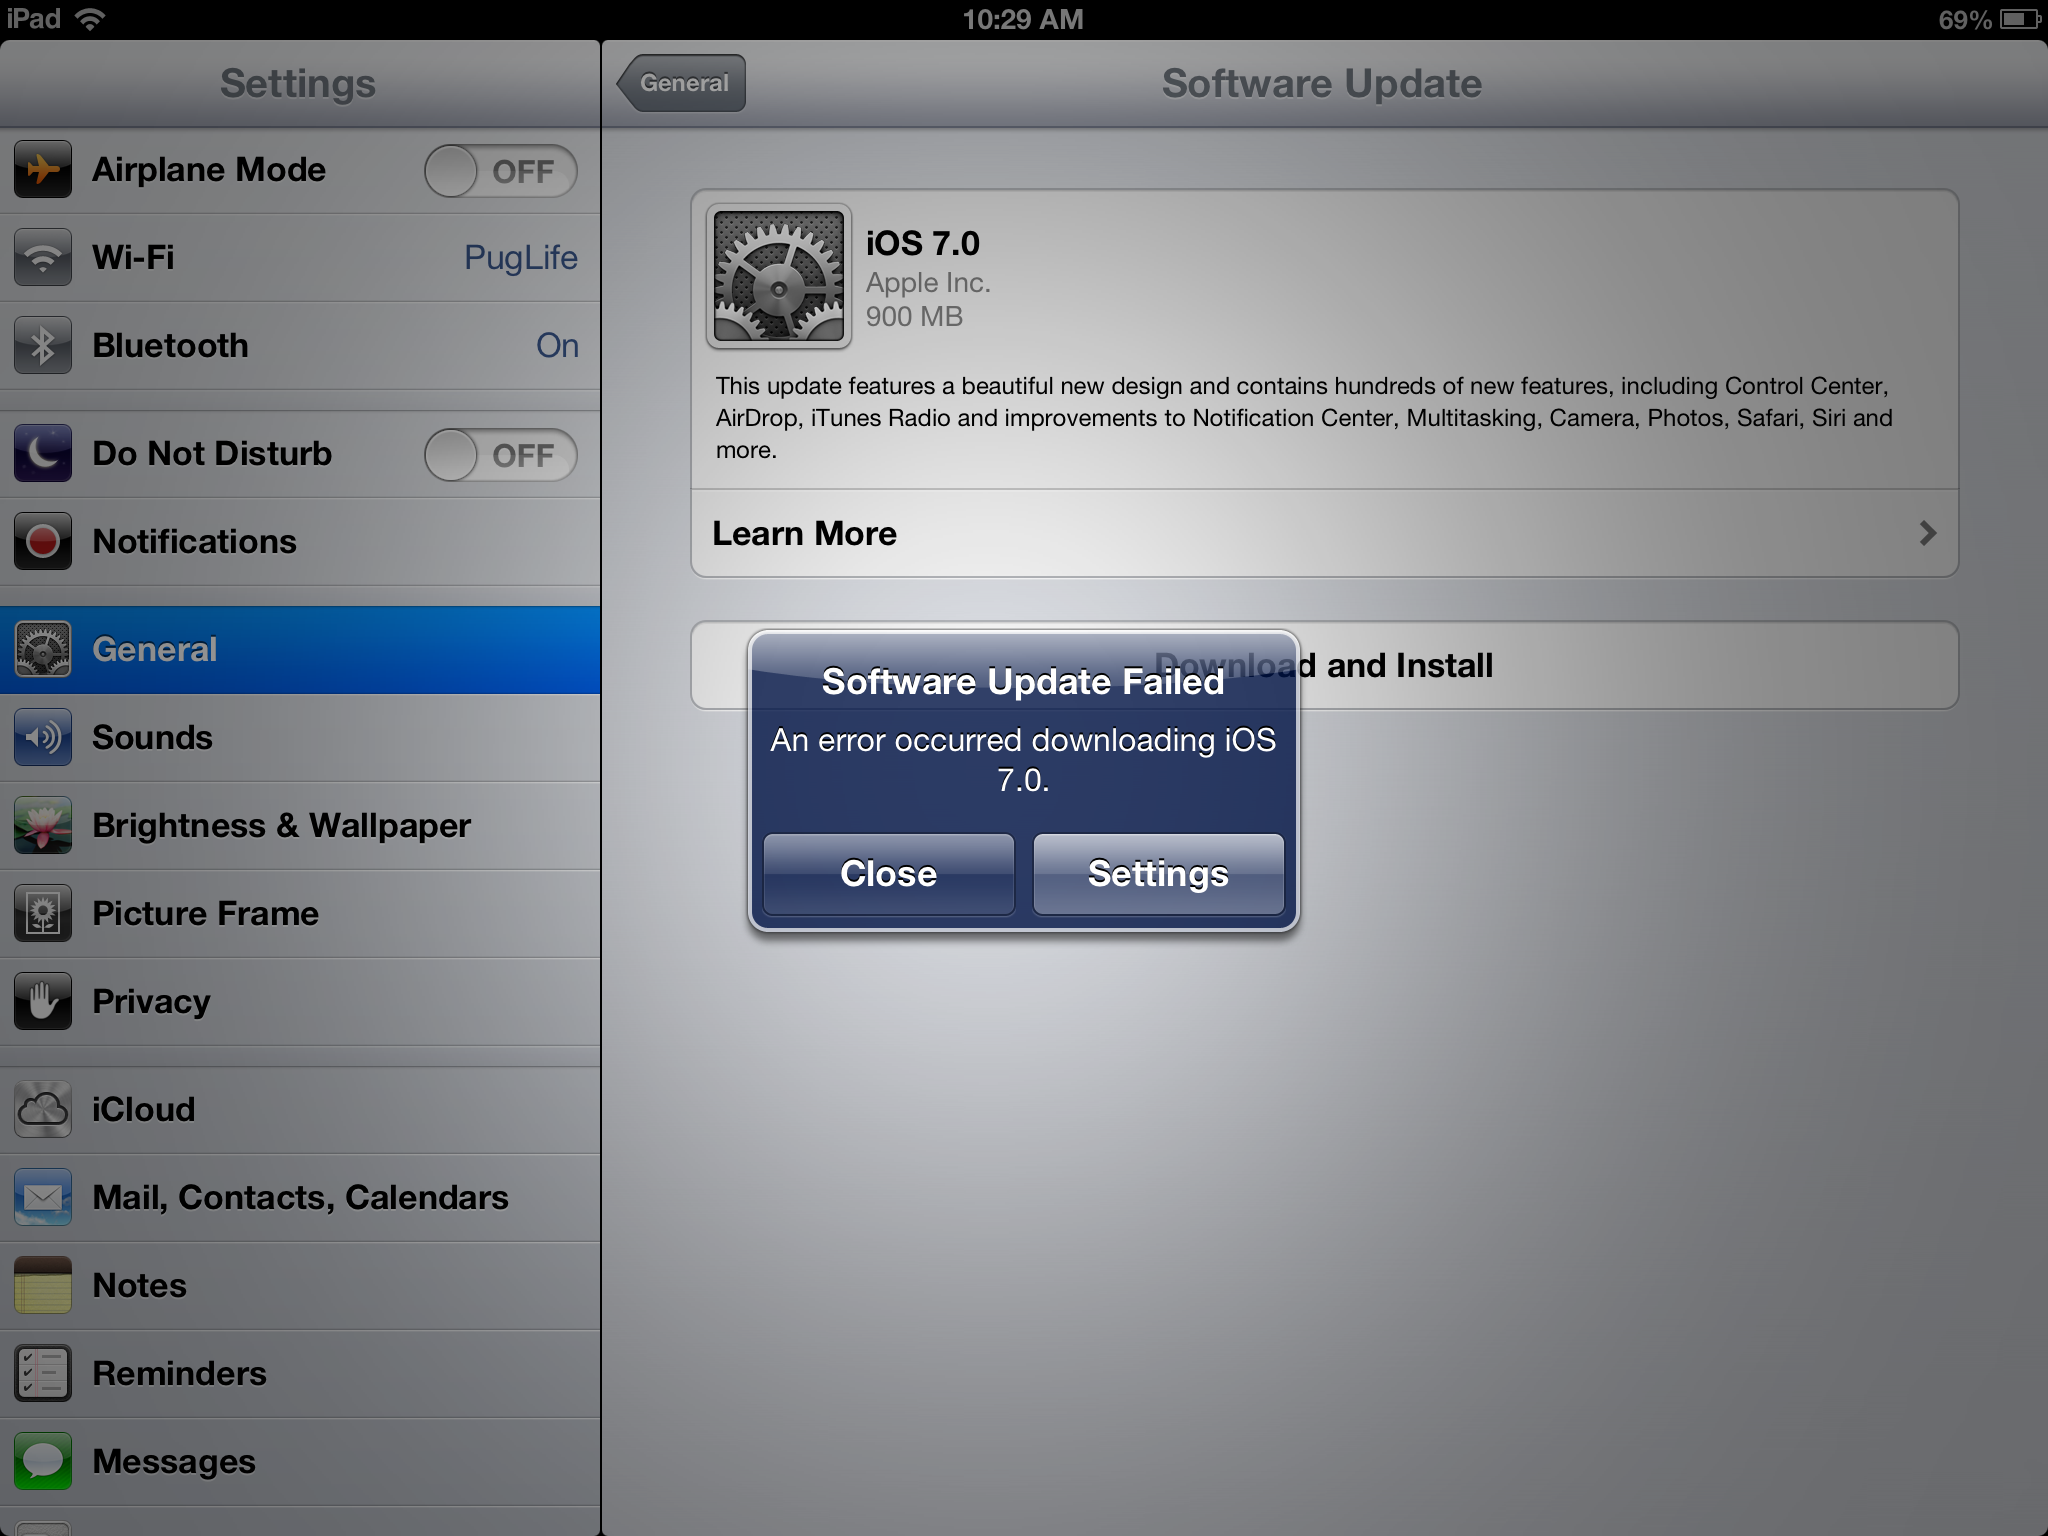 The issues which occurs in the installation of iOS 7 update